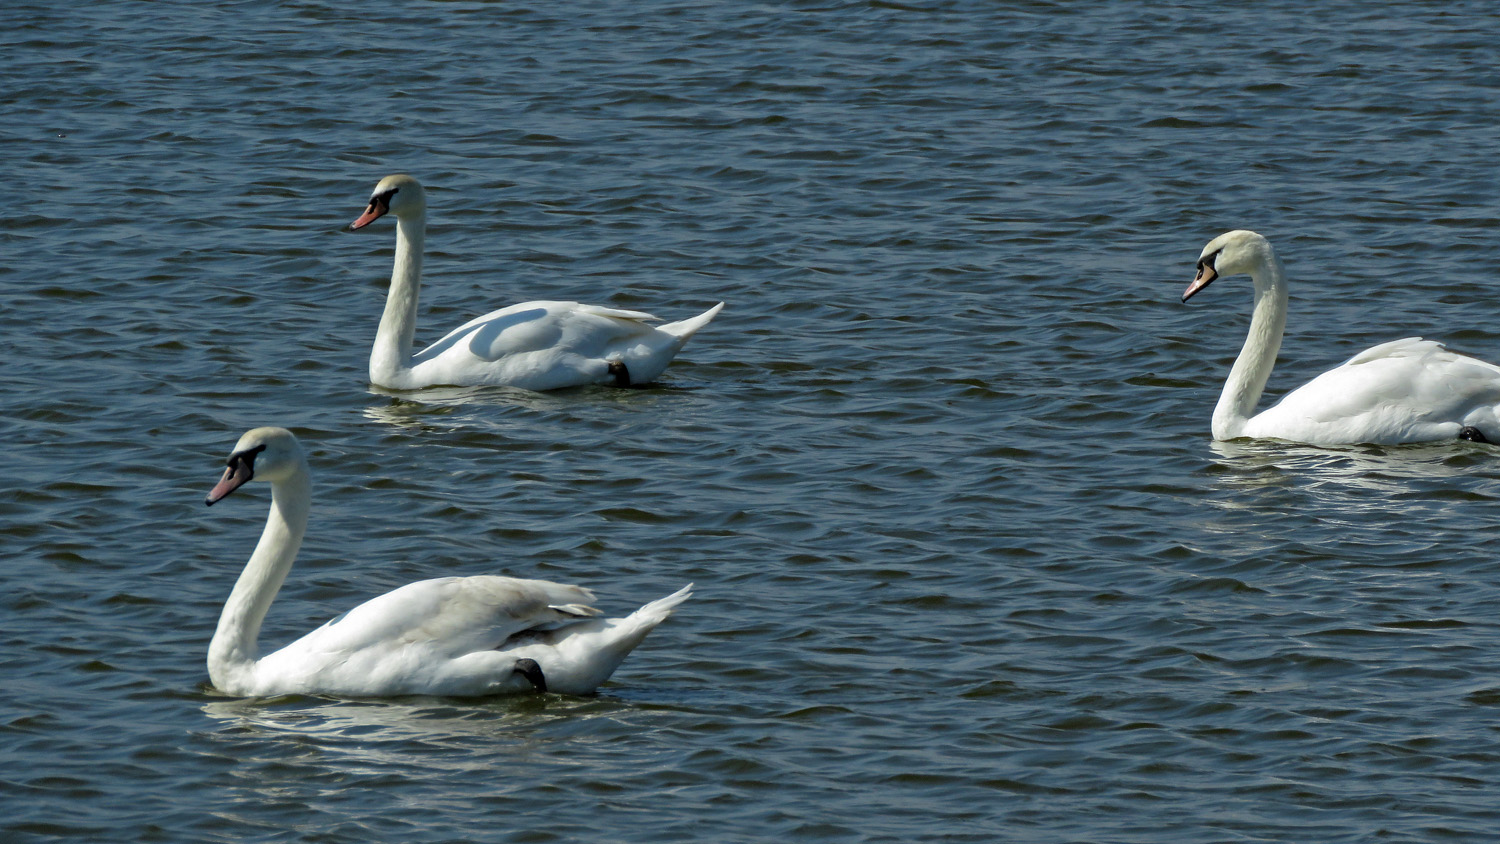 Mute swans, Jamaica Bay Wildlife Refuge, April 6, 2019